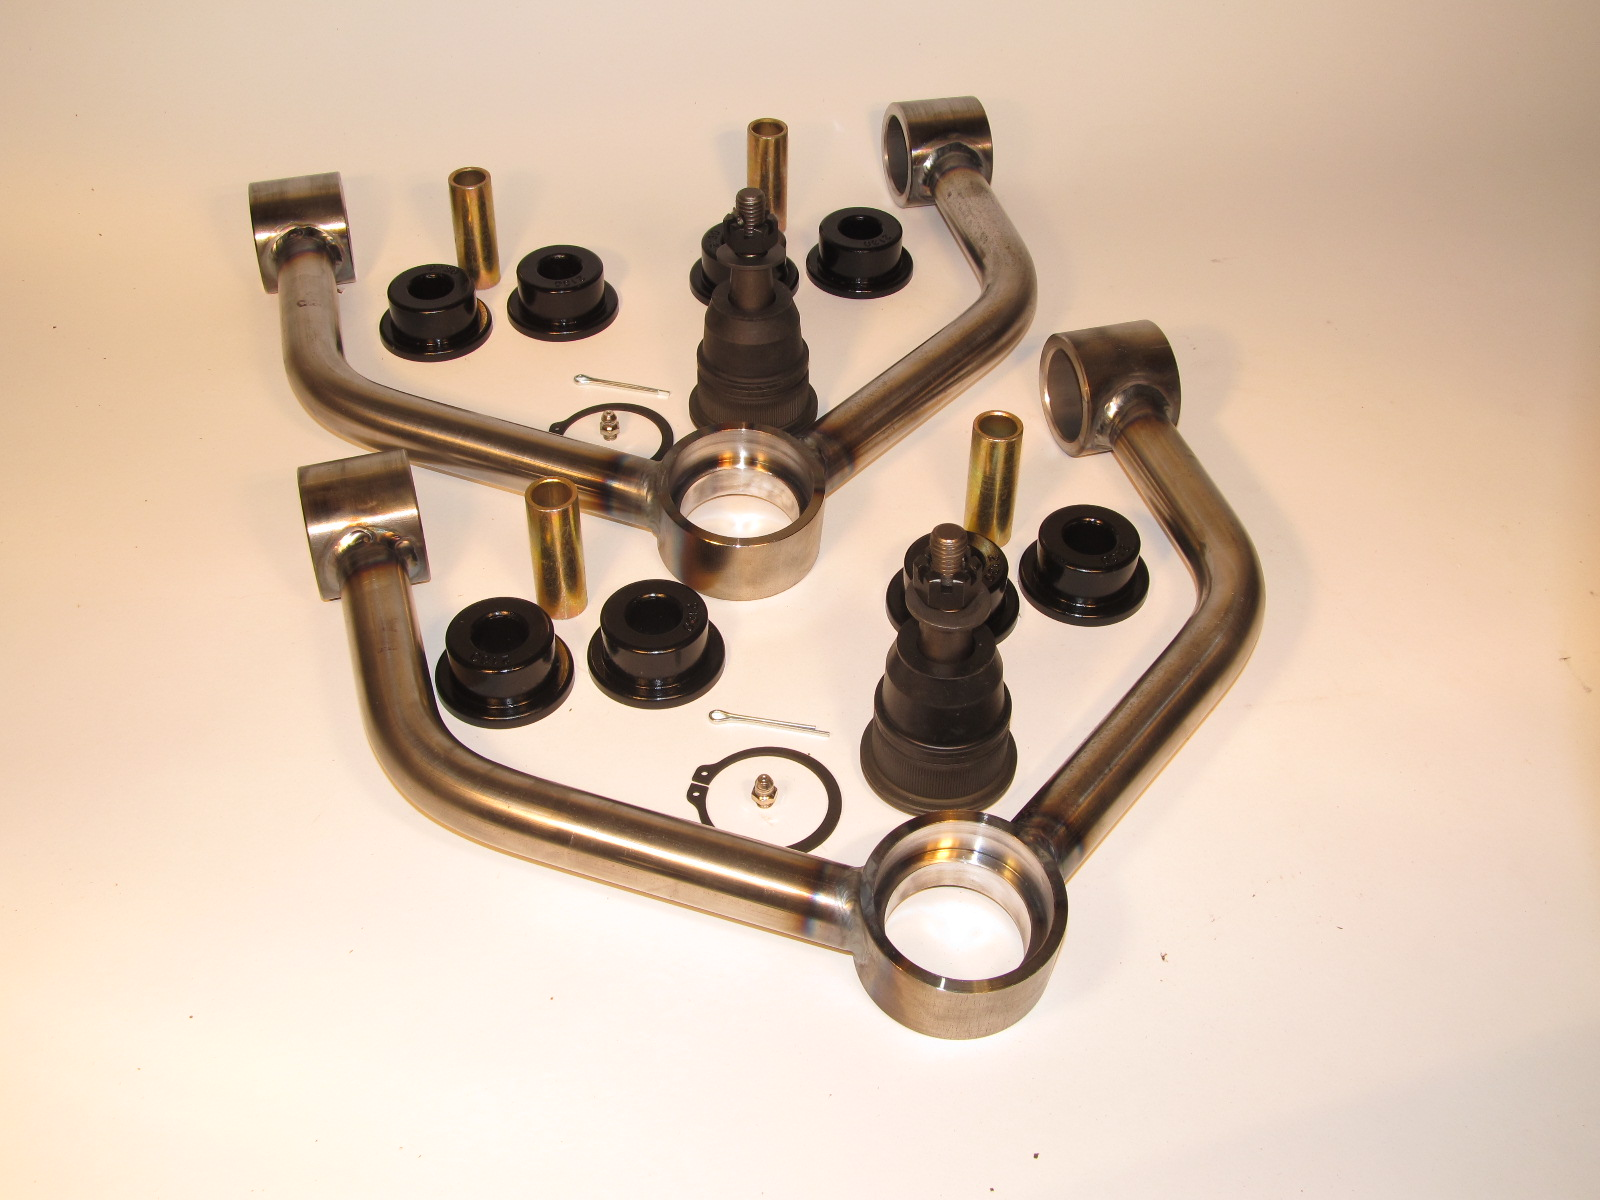 LRD 99-06 FULLSIZE CHEVY UPPER CONTROL ARMS w/BALL JOINTS & BUSHINGS ** Raw Metal Finish **